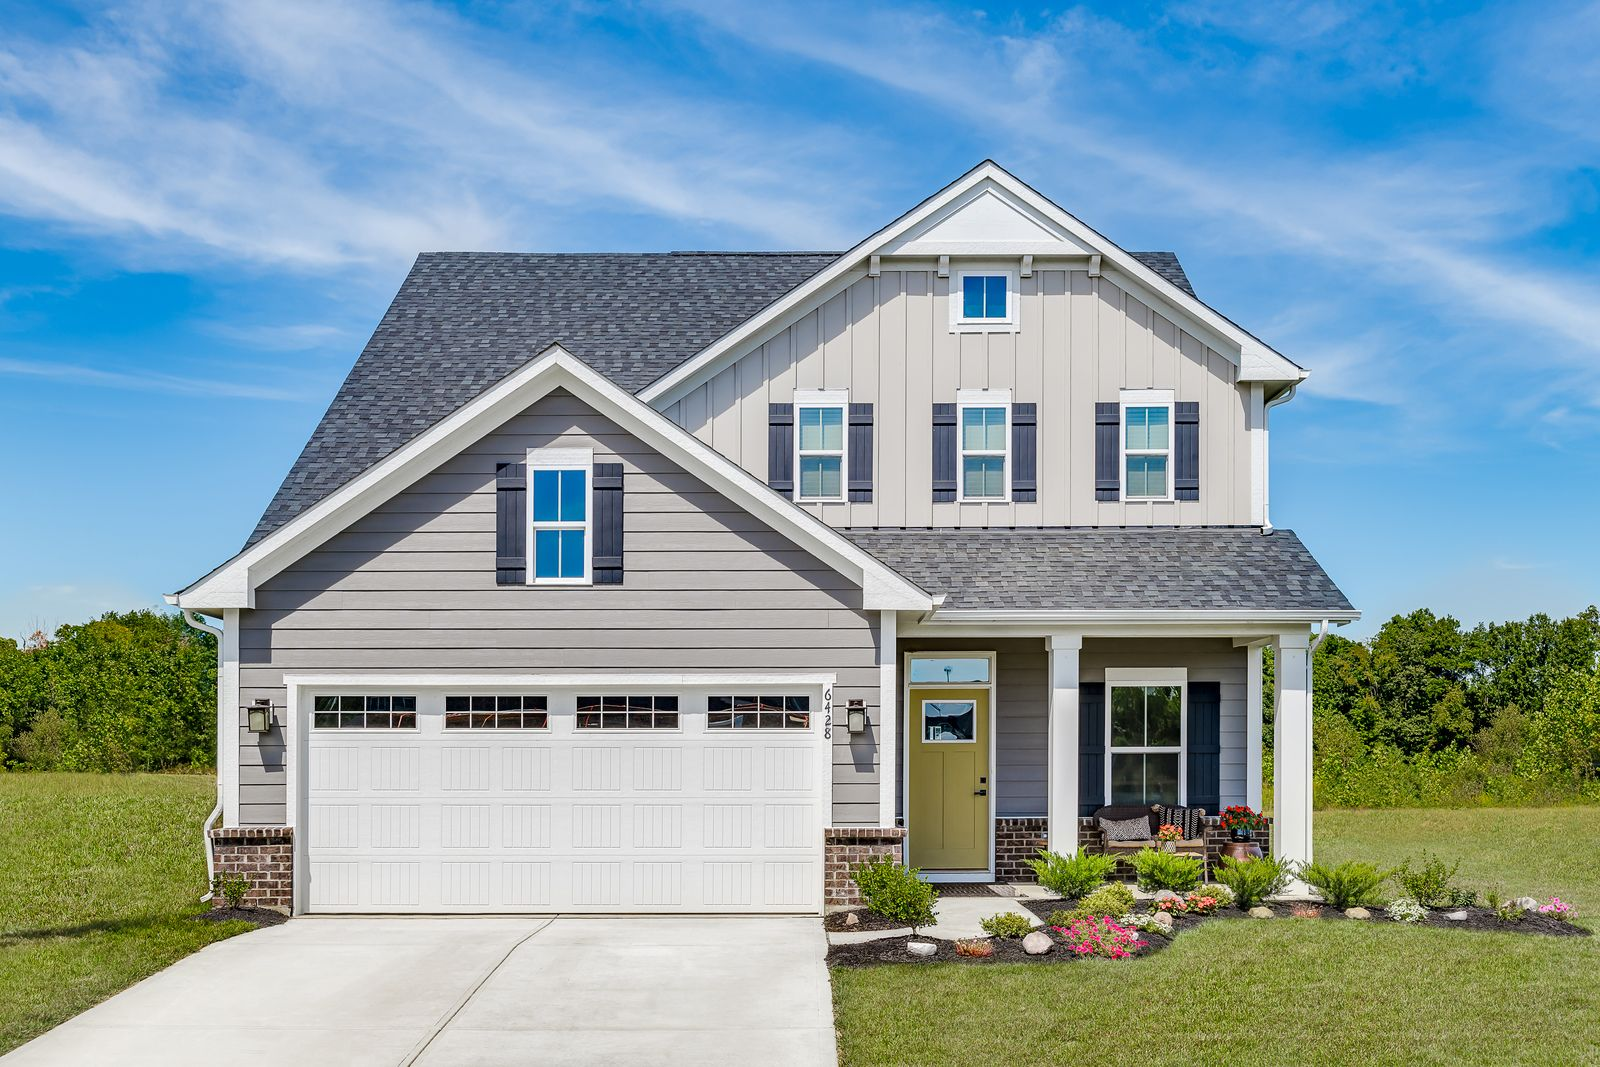 MINUTES FROM MENTOR AND CONCORD, MEADOWS AT FAIRWAY PINES IS YOUR NEW WELCOME HOME:Riverside Schools Premier Community, minutes from Concord & Mentor. 2-story homes with community pool.Click here to schedule your visit today!